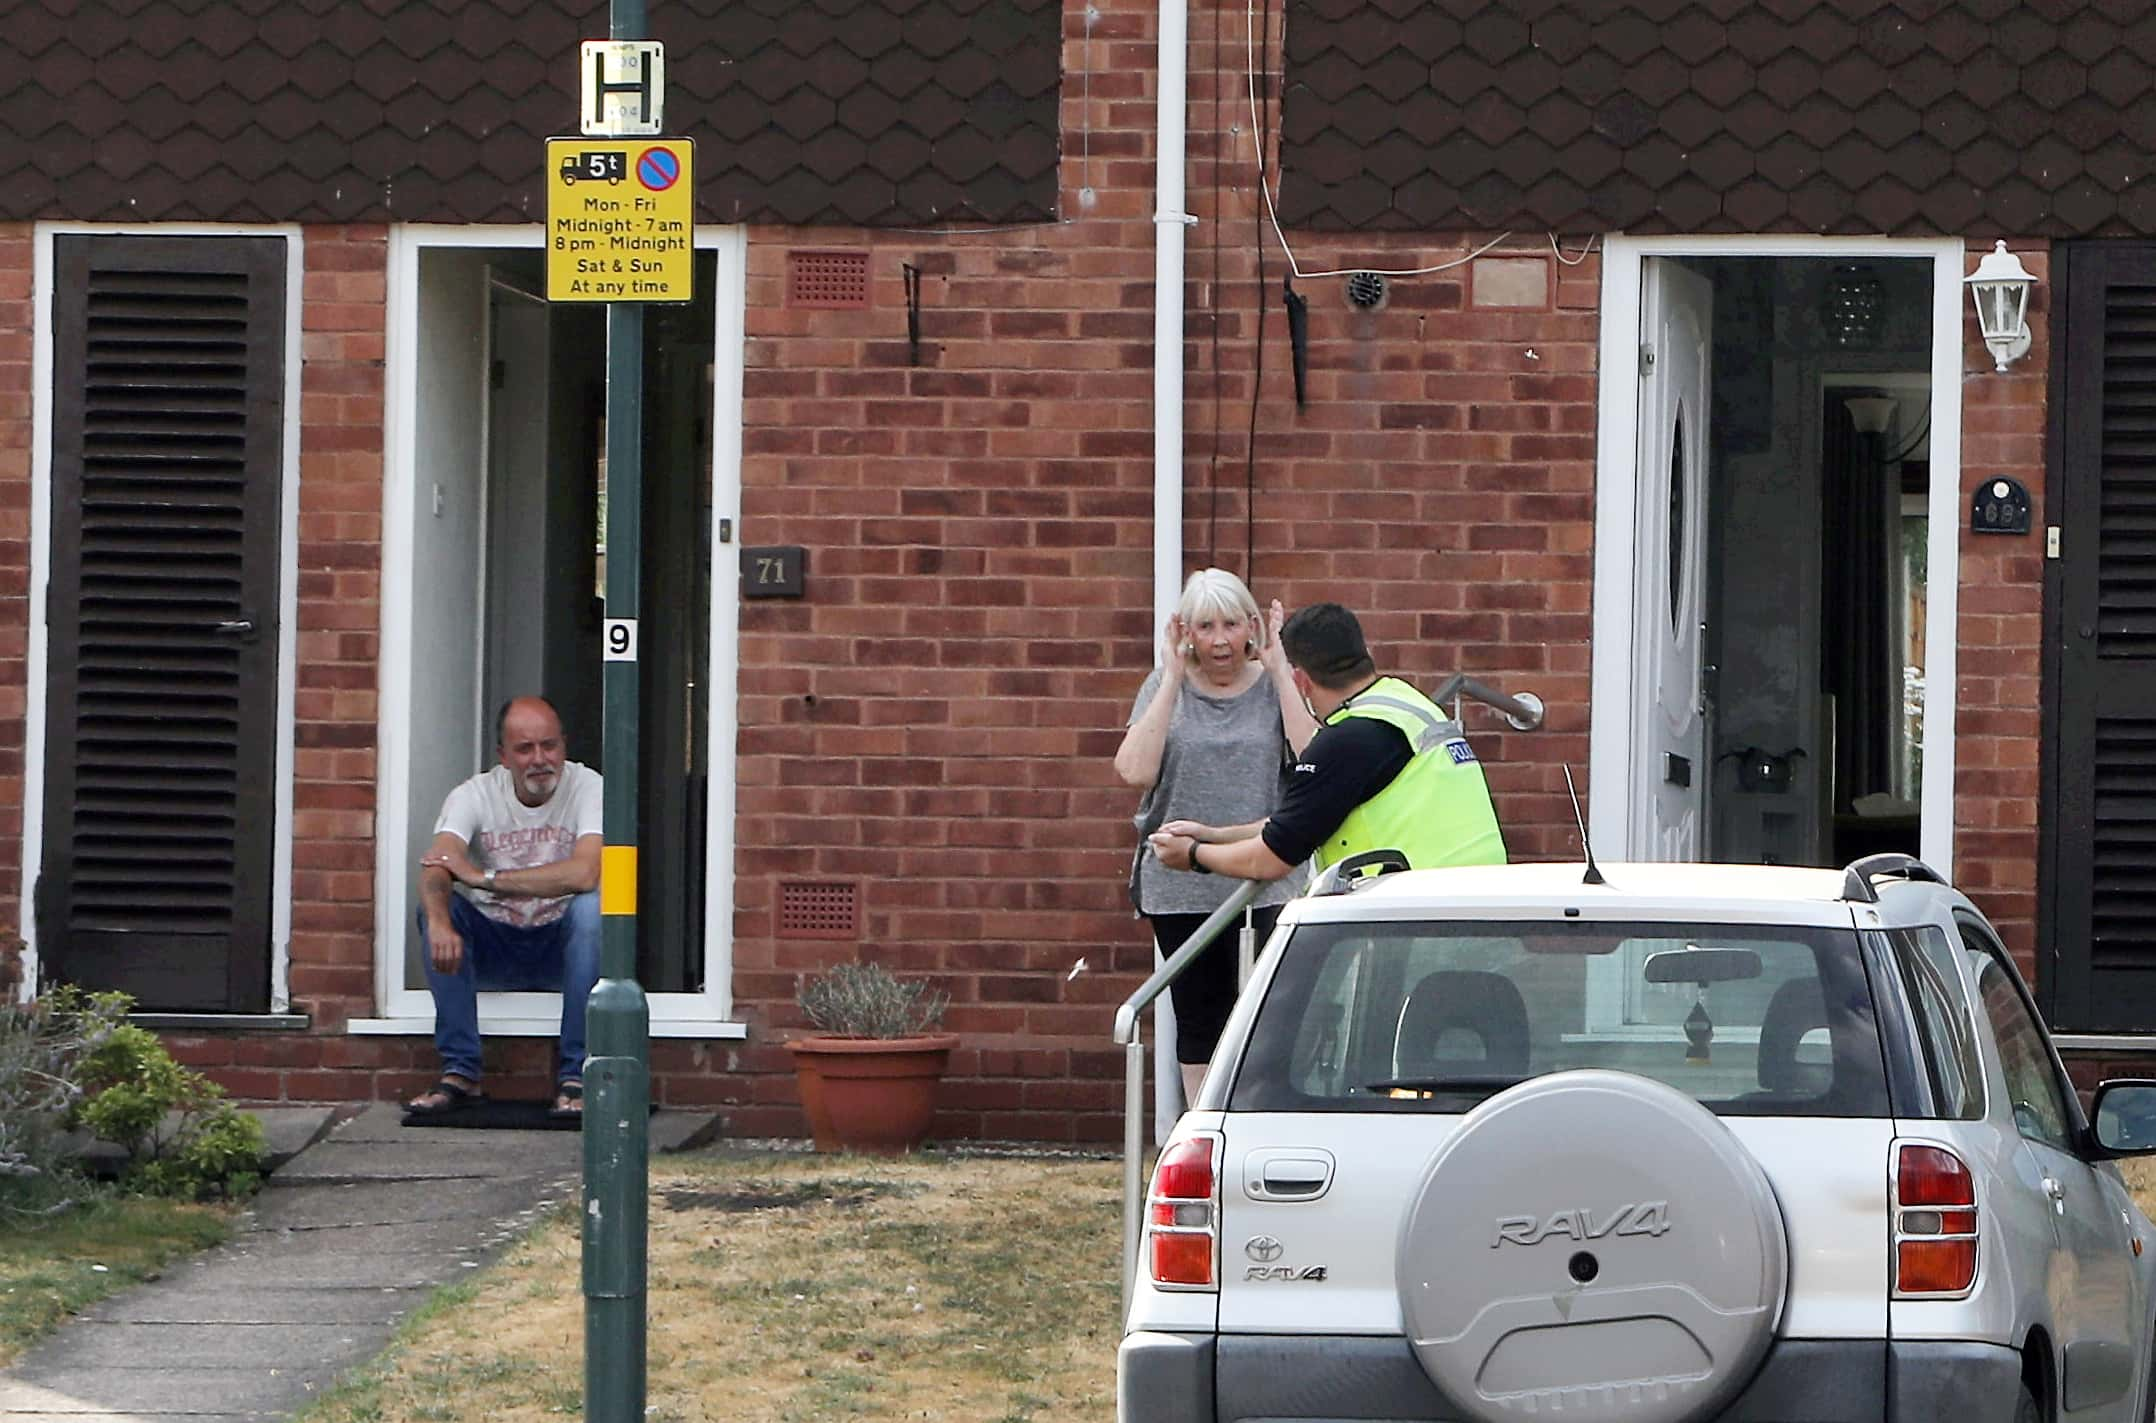 Neighbours told how they heard the mum screaming before seeing her cling to the vehicle and being dragged down the street (Image: SWNS)